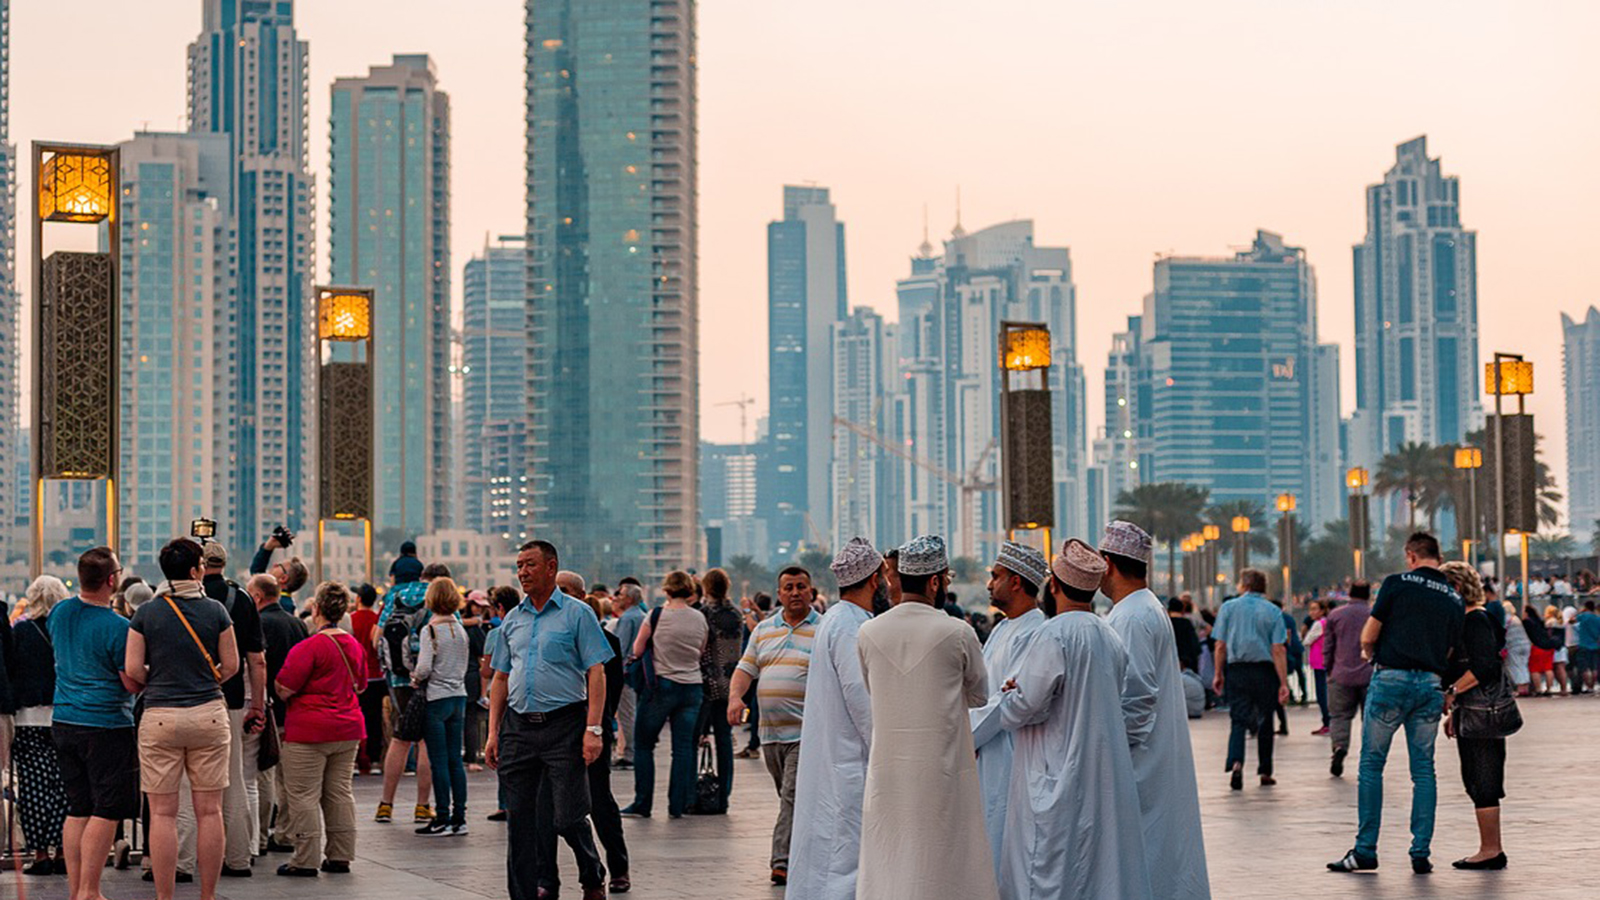 Religious and nonreligious crowd in downtown Dubai, UAE.